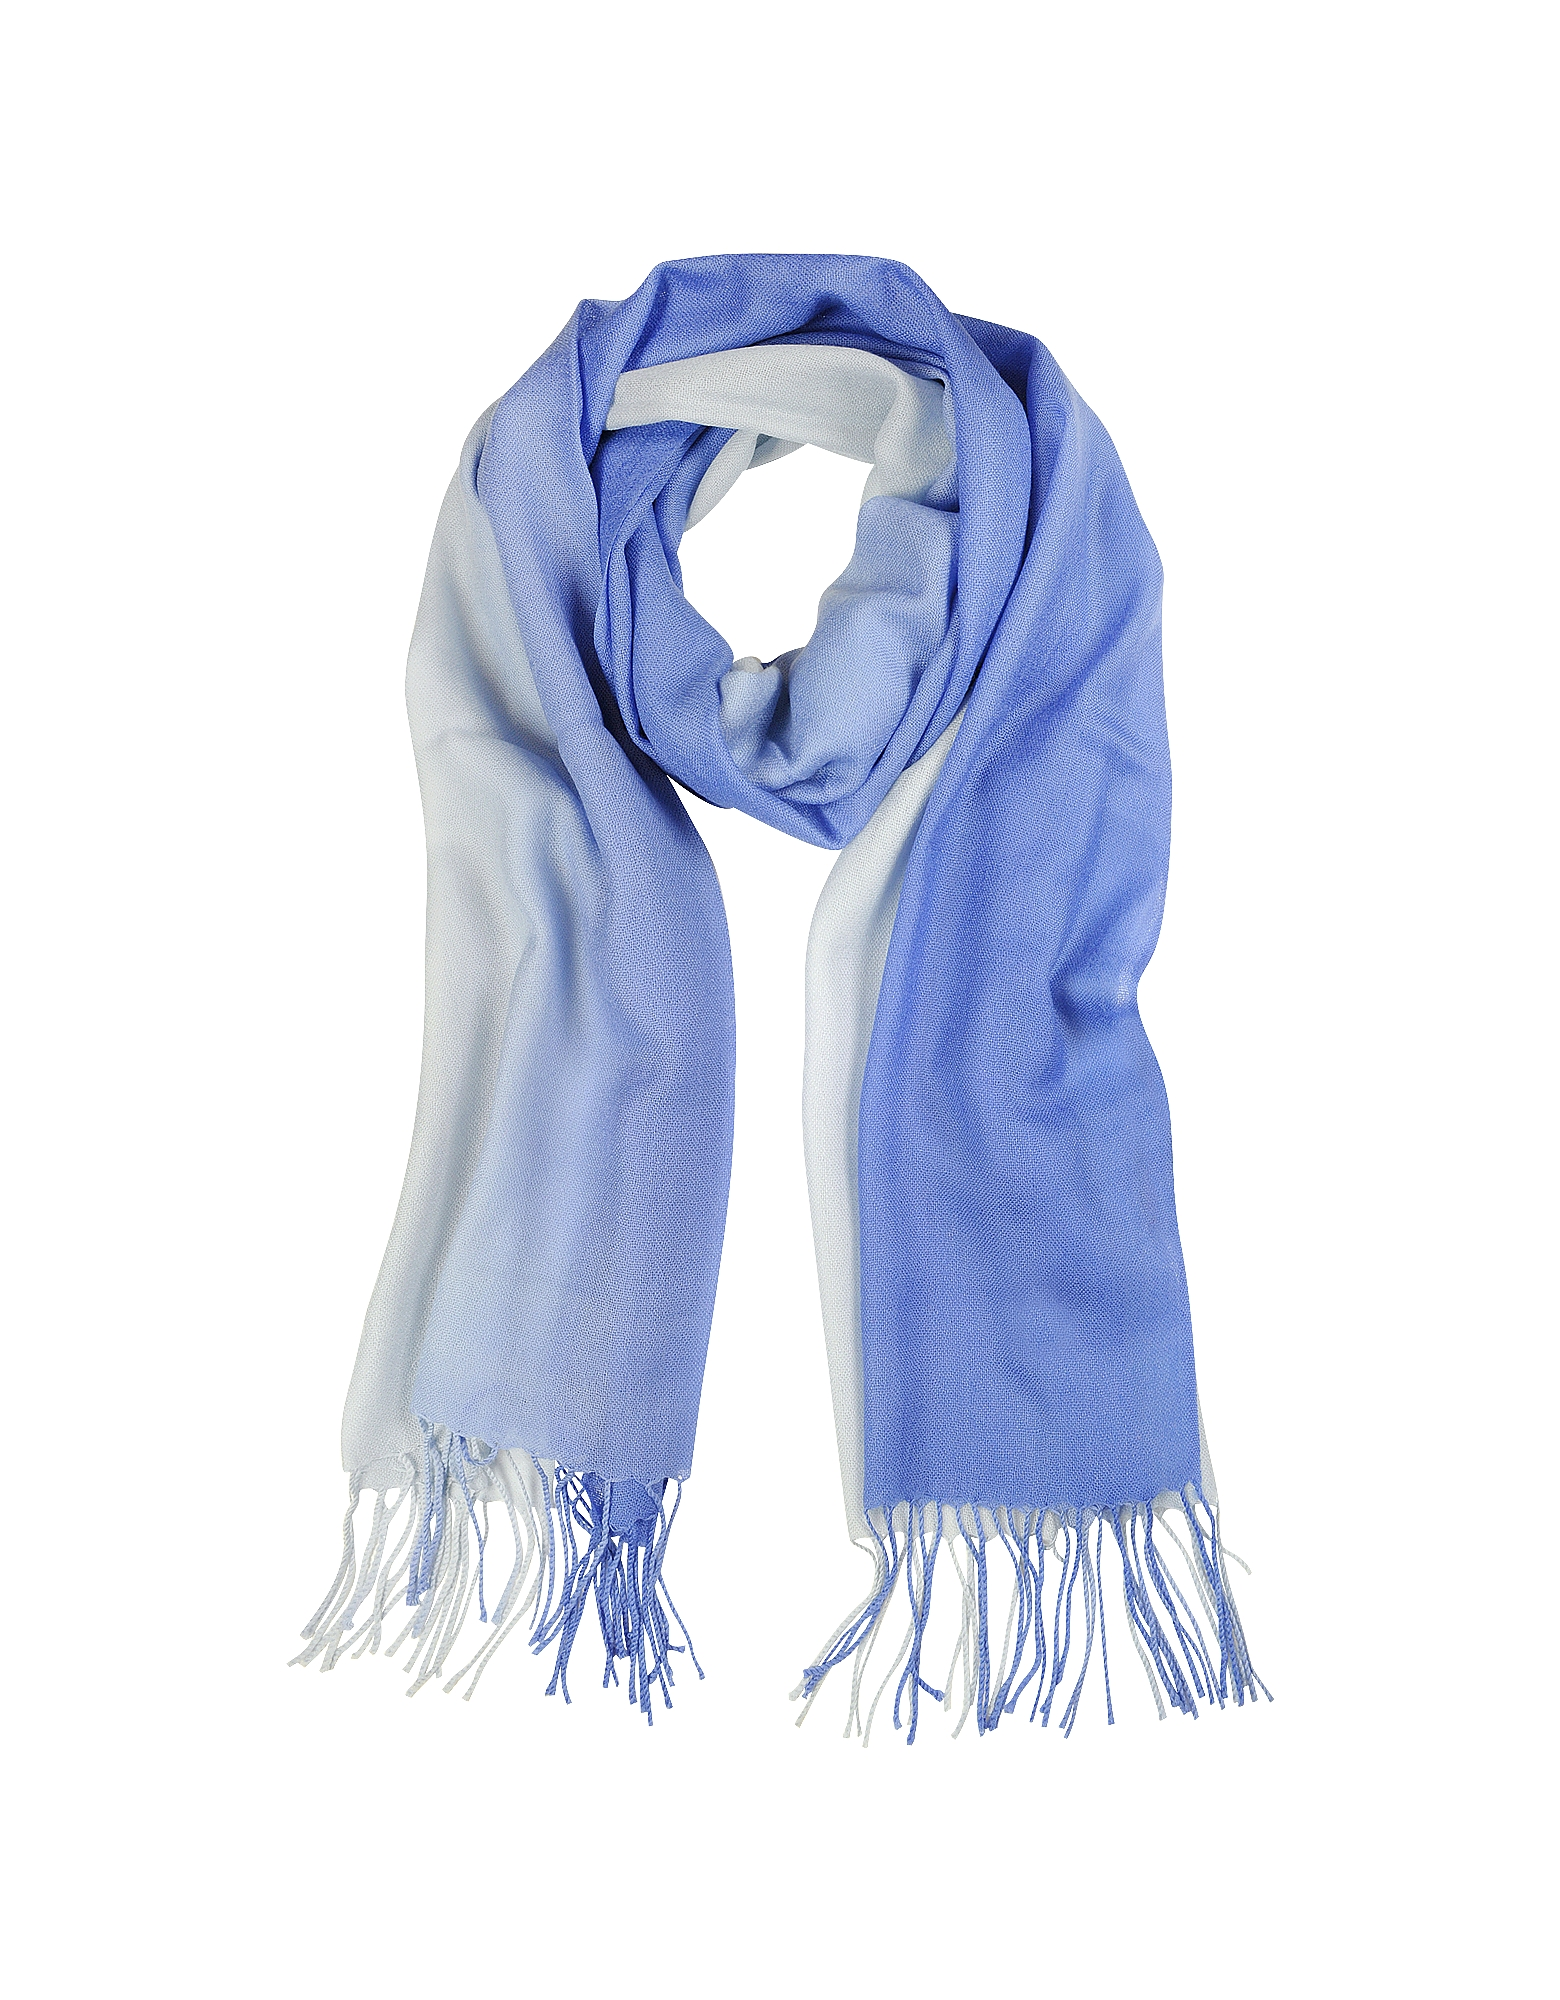 Gradient Blue/Light Blue Wool and Cashmere Stole от Forzieri INT